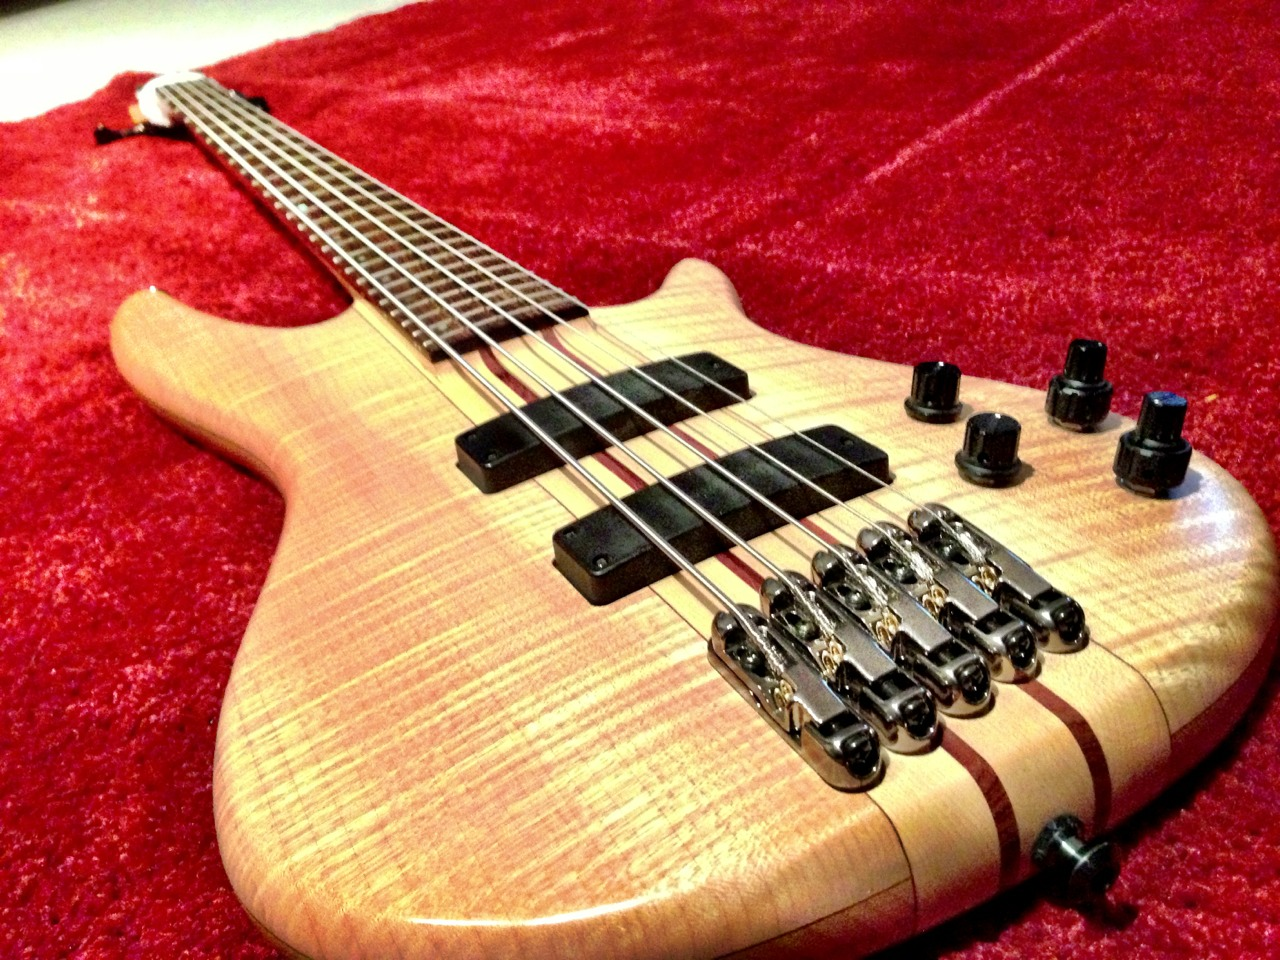 This #bass got a new life today as a Tenor 5-string - E-to-C. It had frustrated me for years in tone and playability and now that I changed the strings and gave it a full setup, it sounds and plays so much better.    Relatively short scale (compared to my other basses), neck-through for sustain and high-register access, narrow string spacing. It makes so much sense for it to be the way it is now, in hindsight.